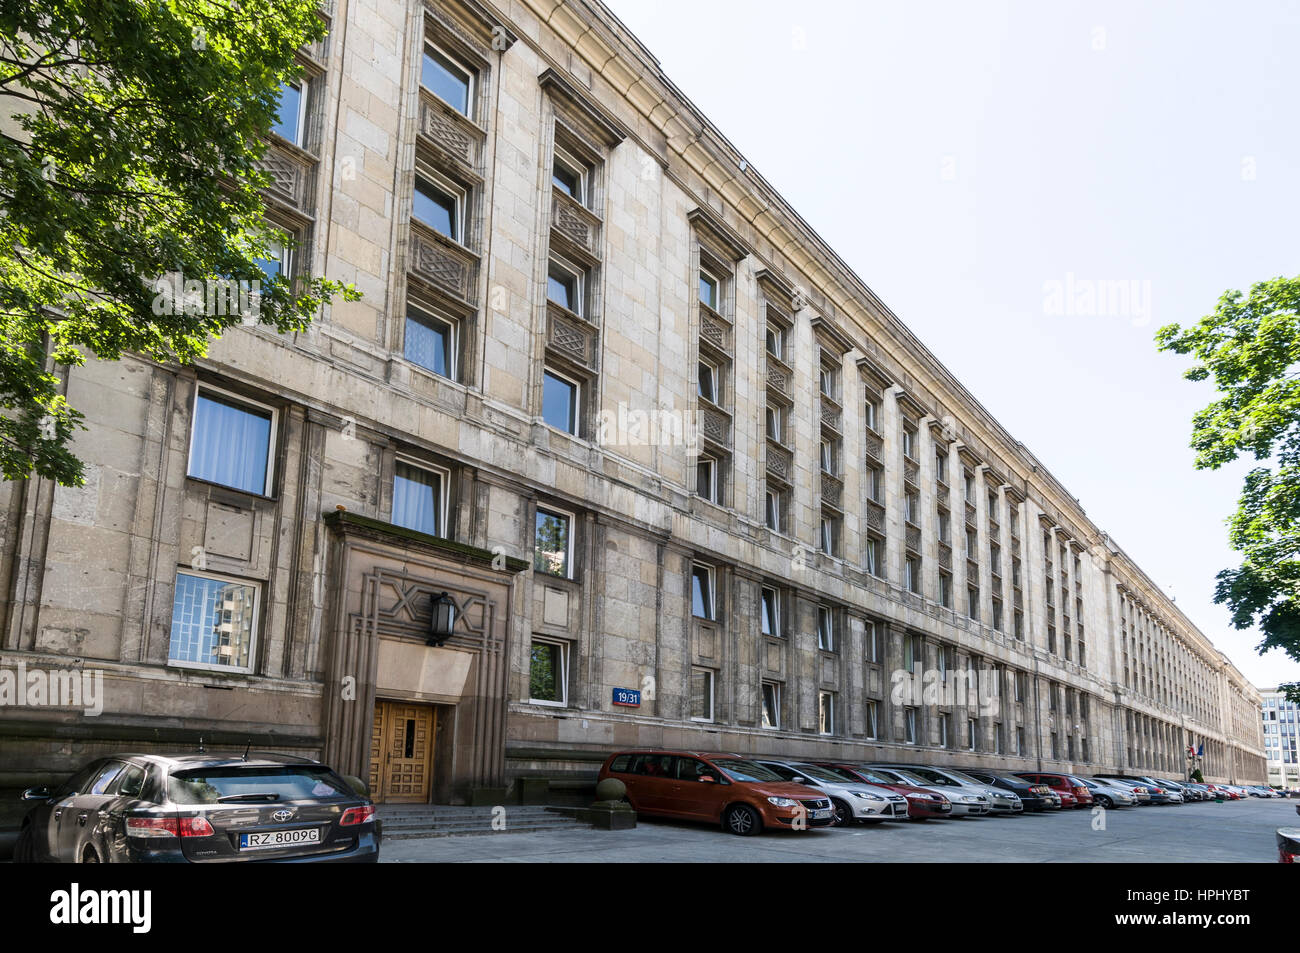 Ministerstwo Rolnictwa i rozwoju Wsi - Ministry of Agriculture and Rural Development in Wspolna Street,Warsaw,Poland - Stock Image